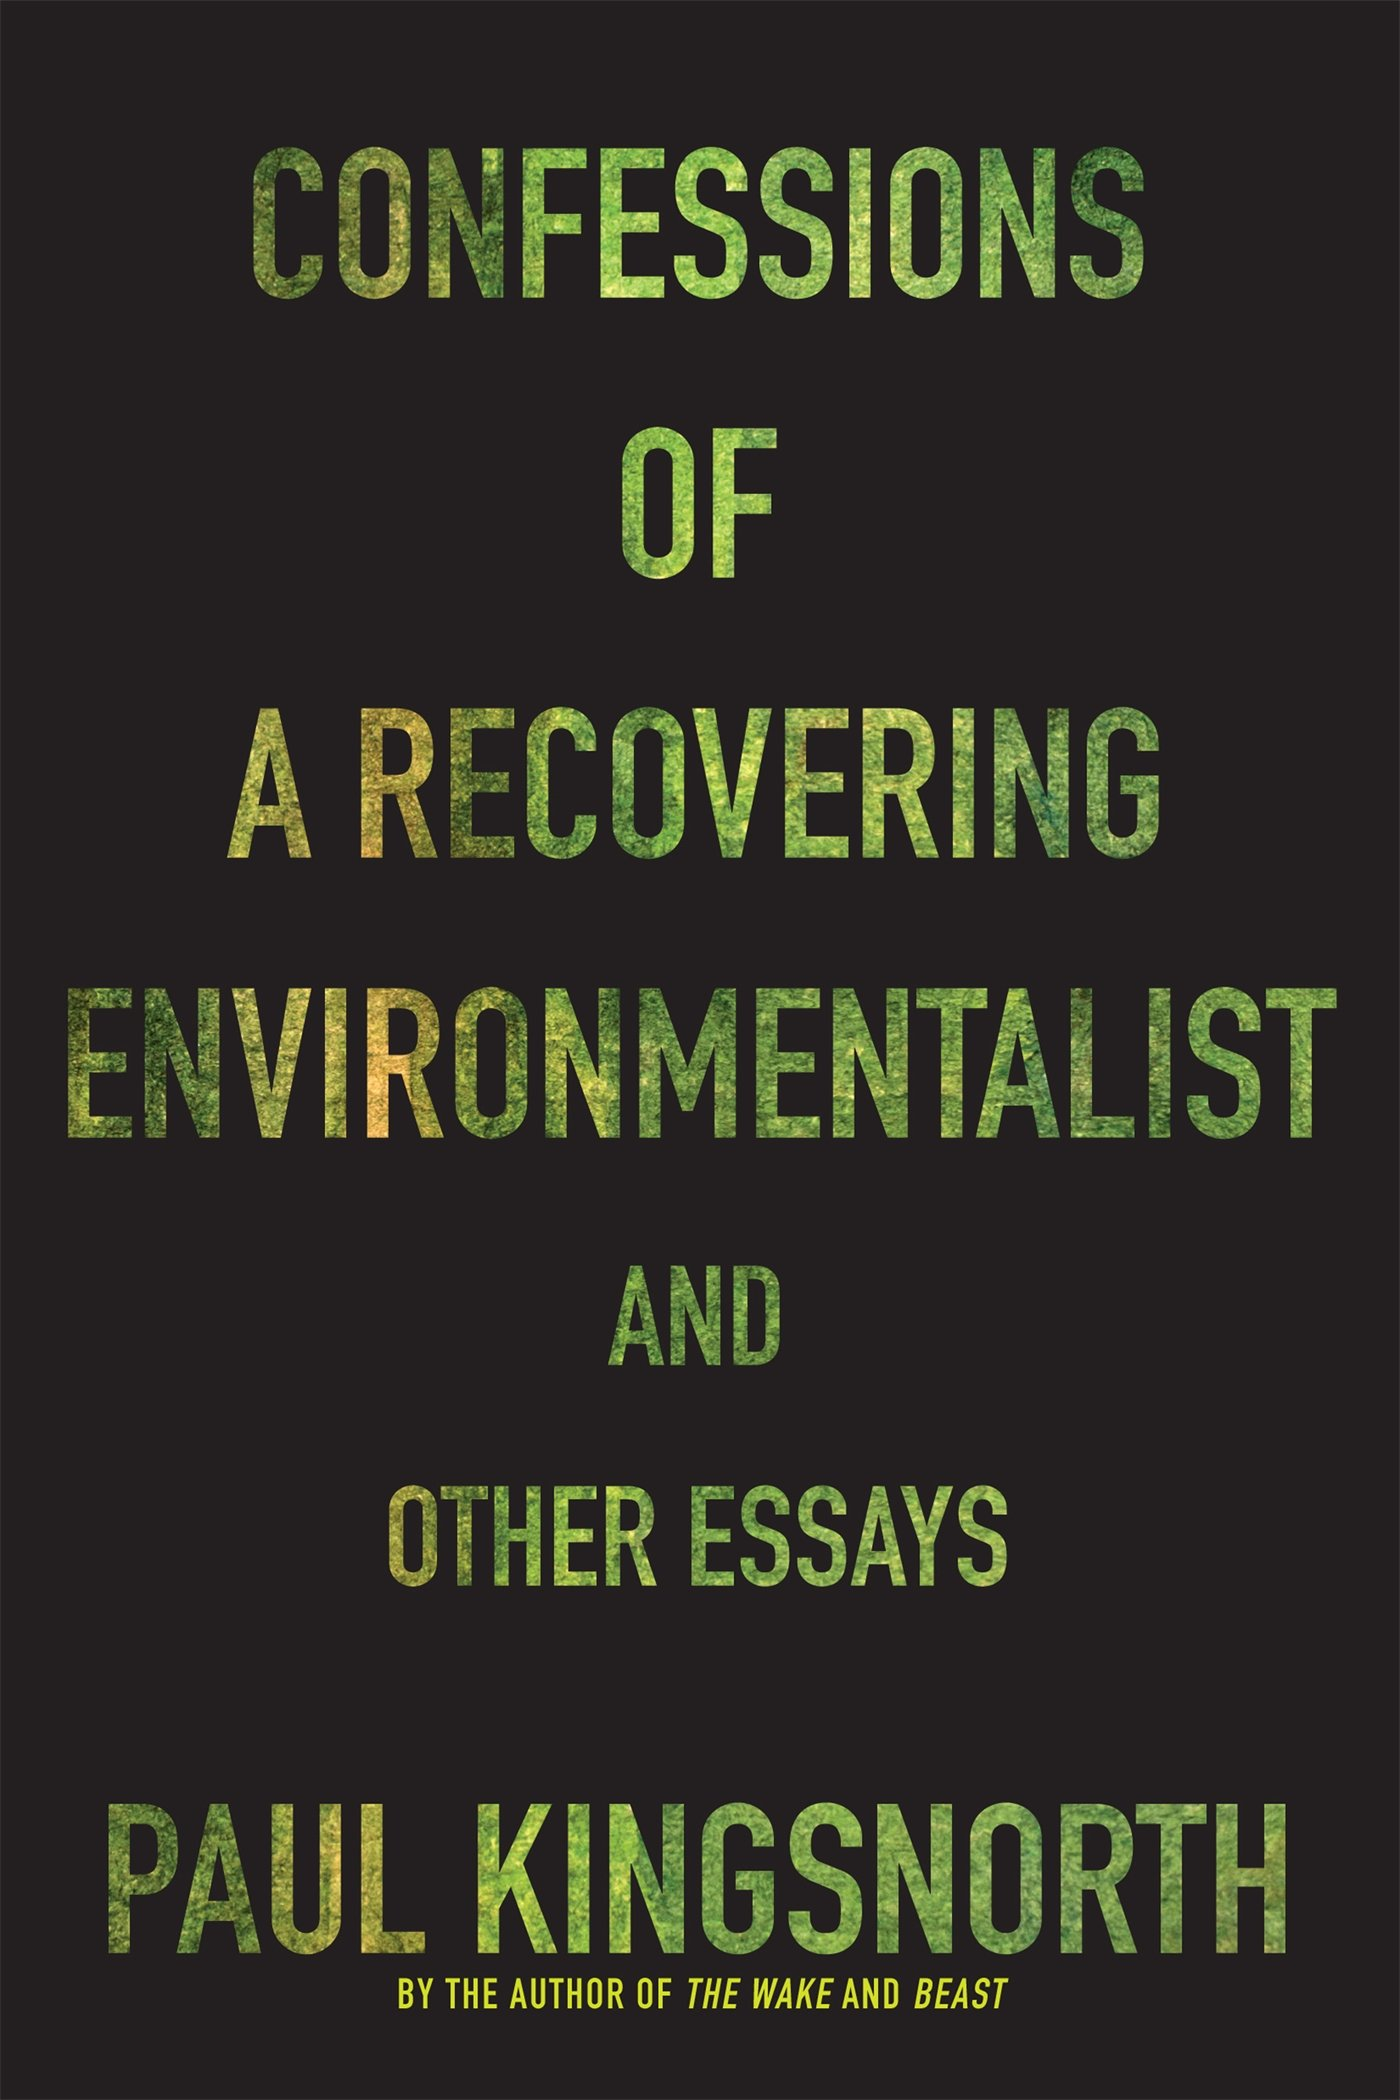 Essay Thesis Example Confessions Of A Recovering Environmentalist And Other Essays Paul  Kingsnorth  Amazoncom Books Research Proposal Essay also Essay On Terrorism In English Confessions Of A Recovering Environmentalist And Other Essays Paul  Examples Of Thesis Statements For Essays